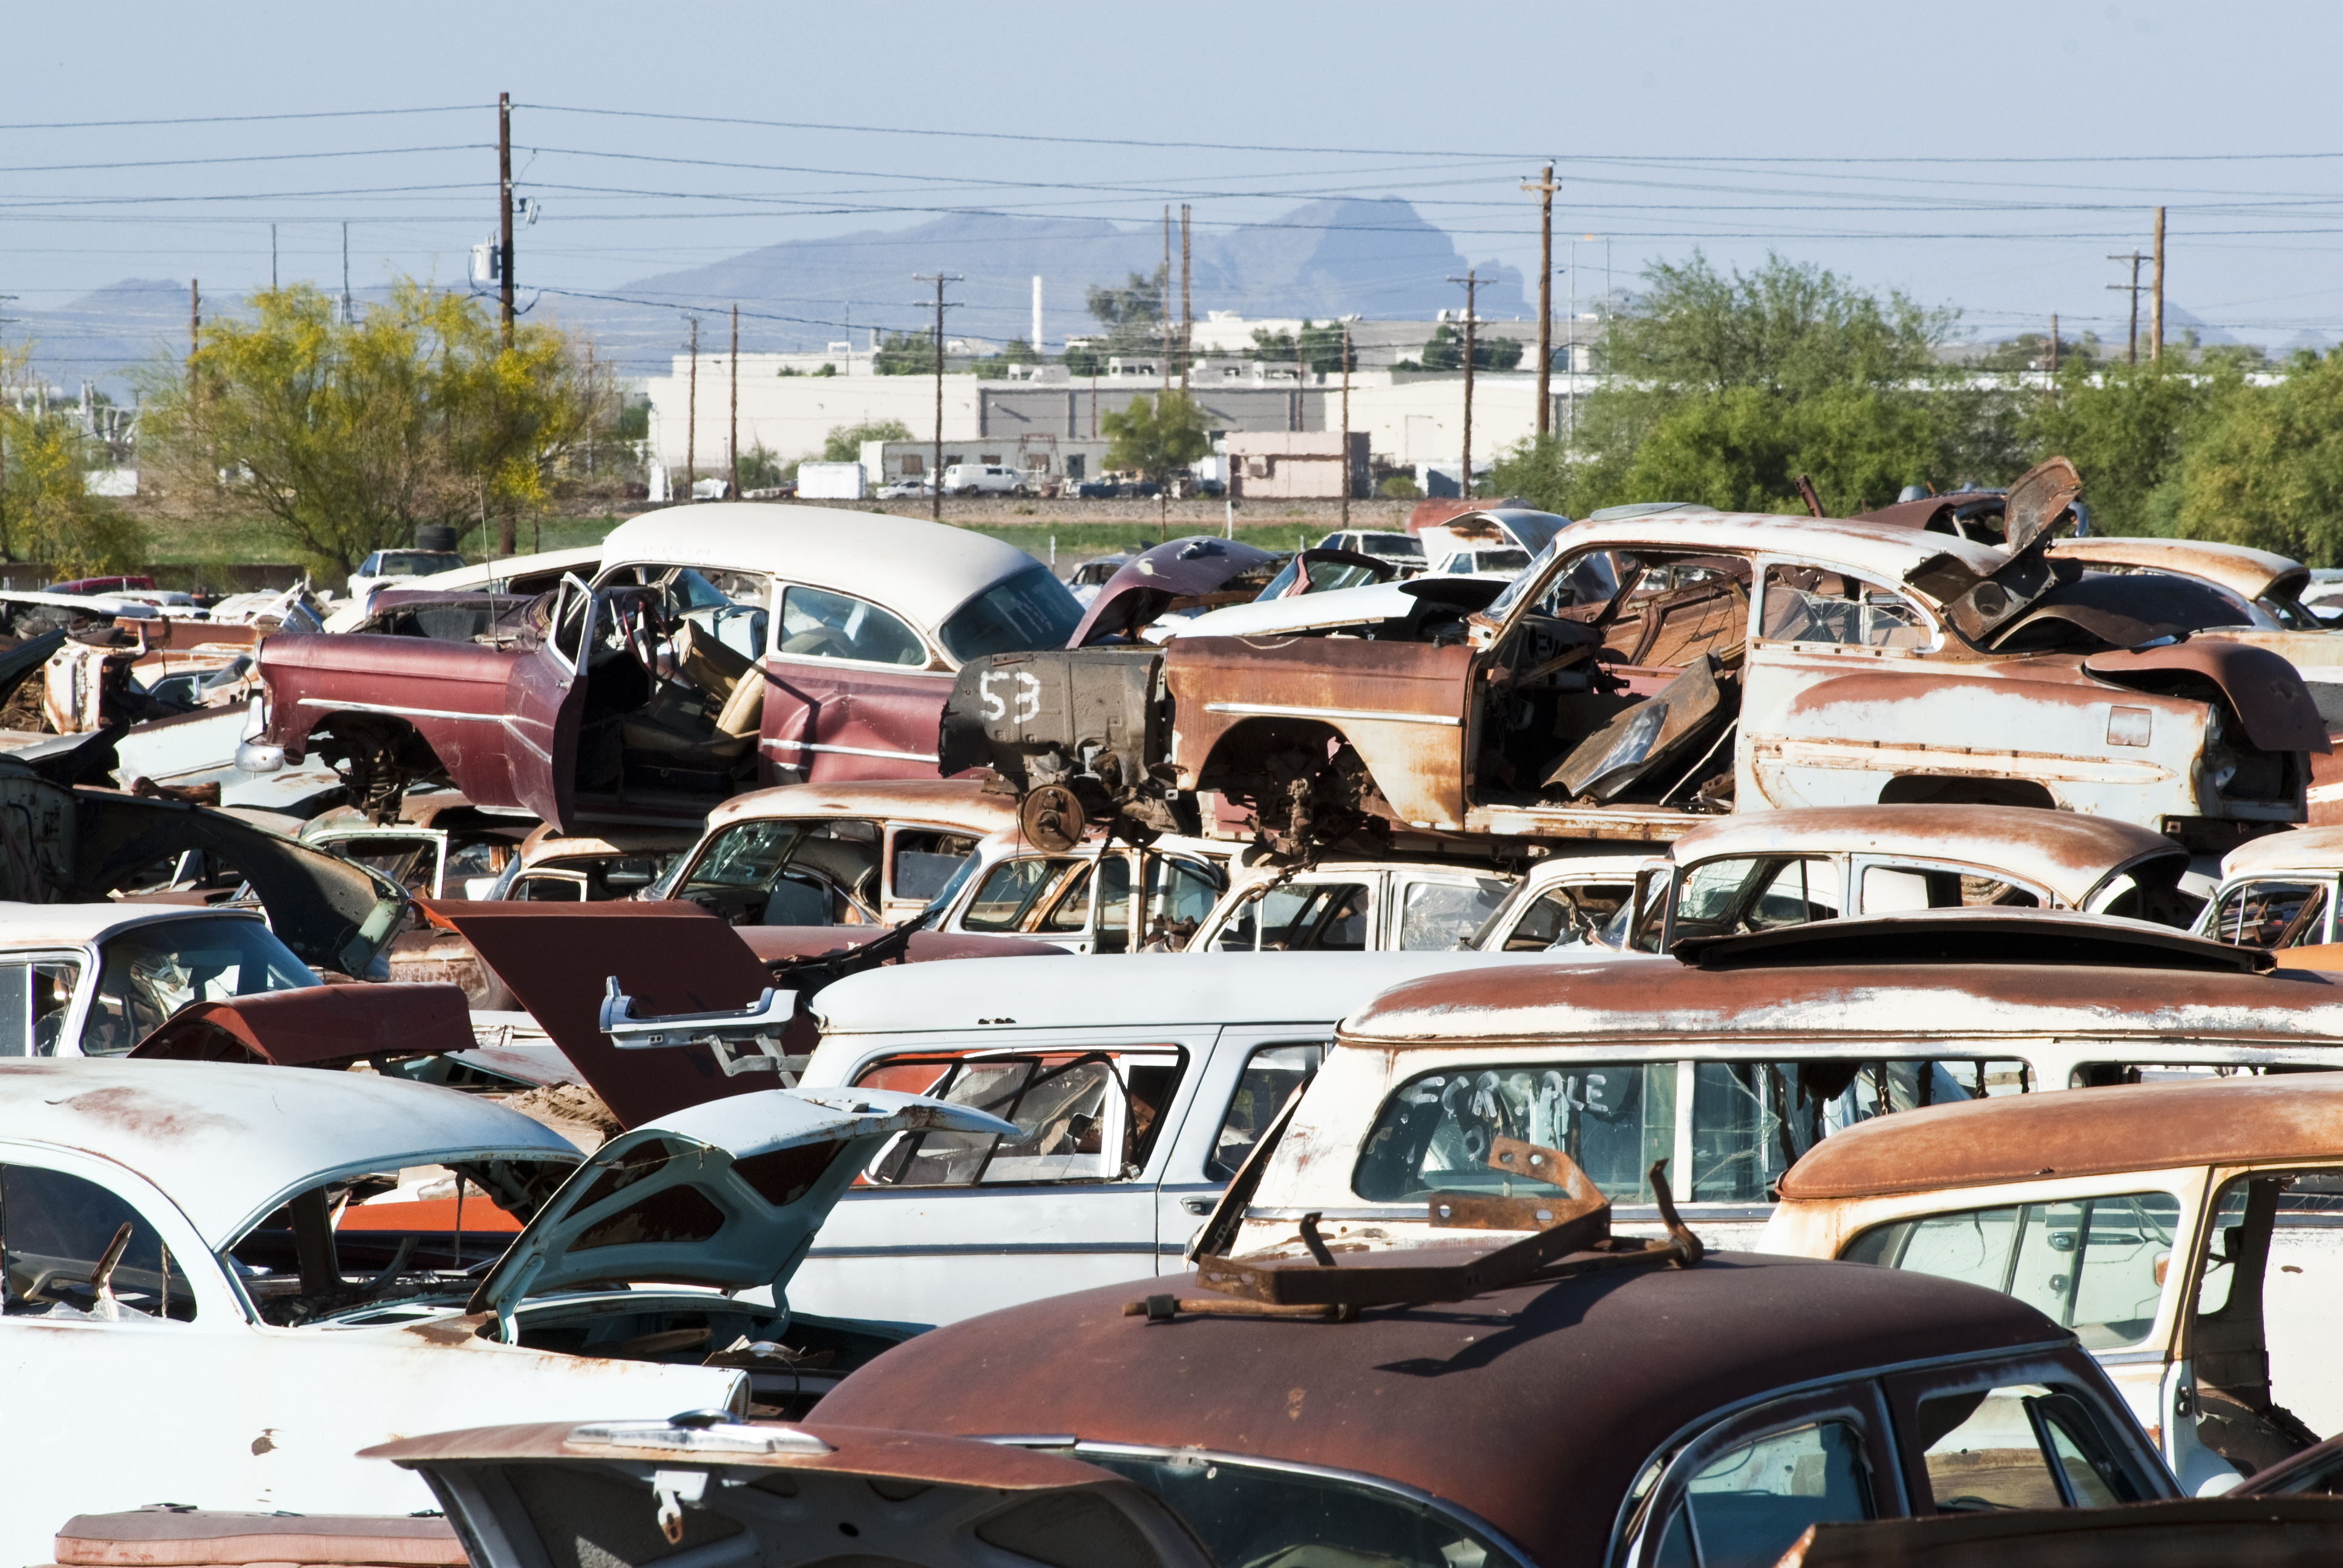 Salvage Yards Are Public Treasure Chests | Auto Insurance PUC